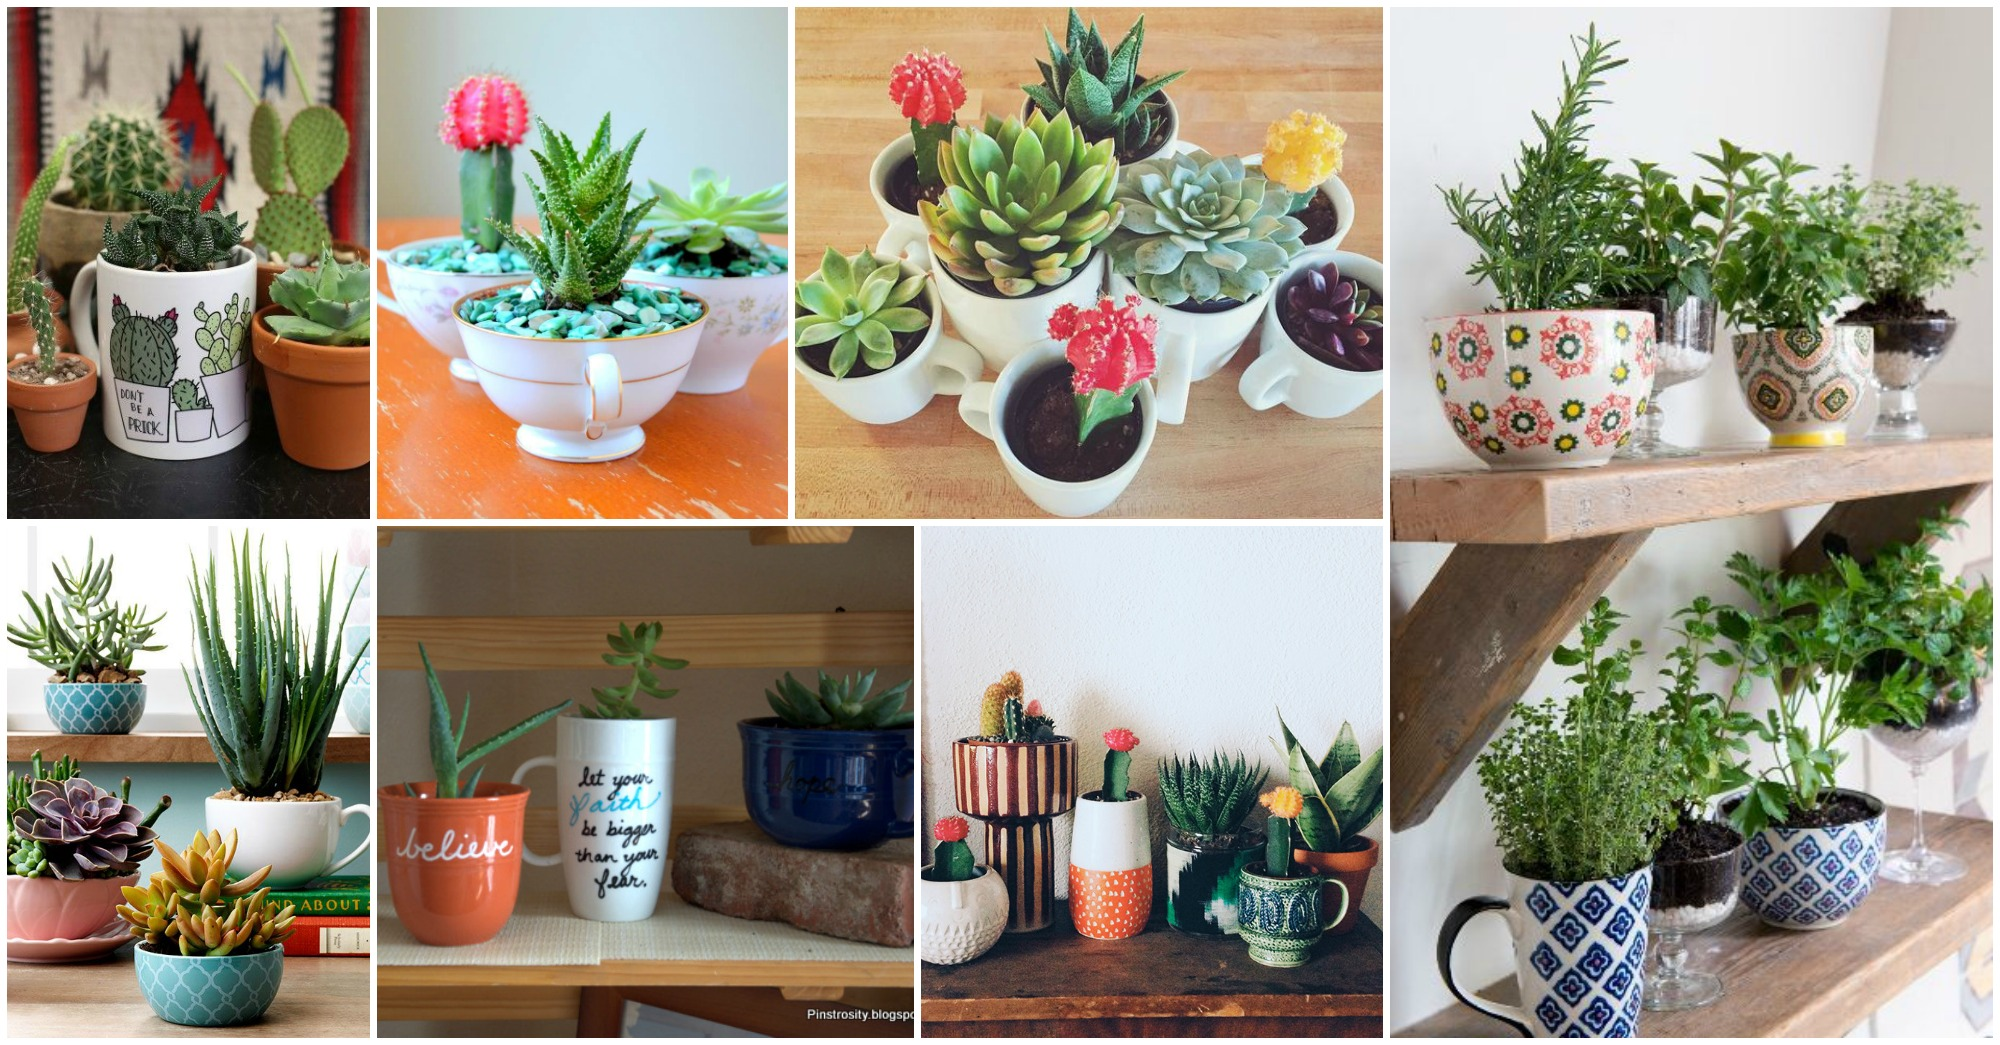 12 Astonishing Tea Cup and Coffee Mug Gardens